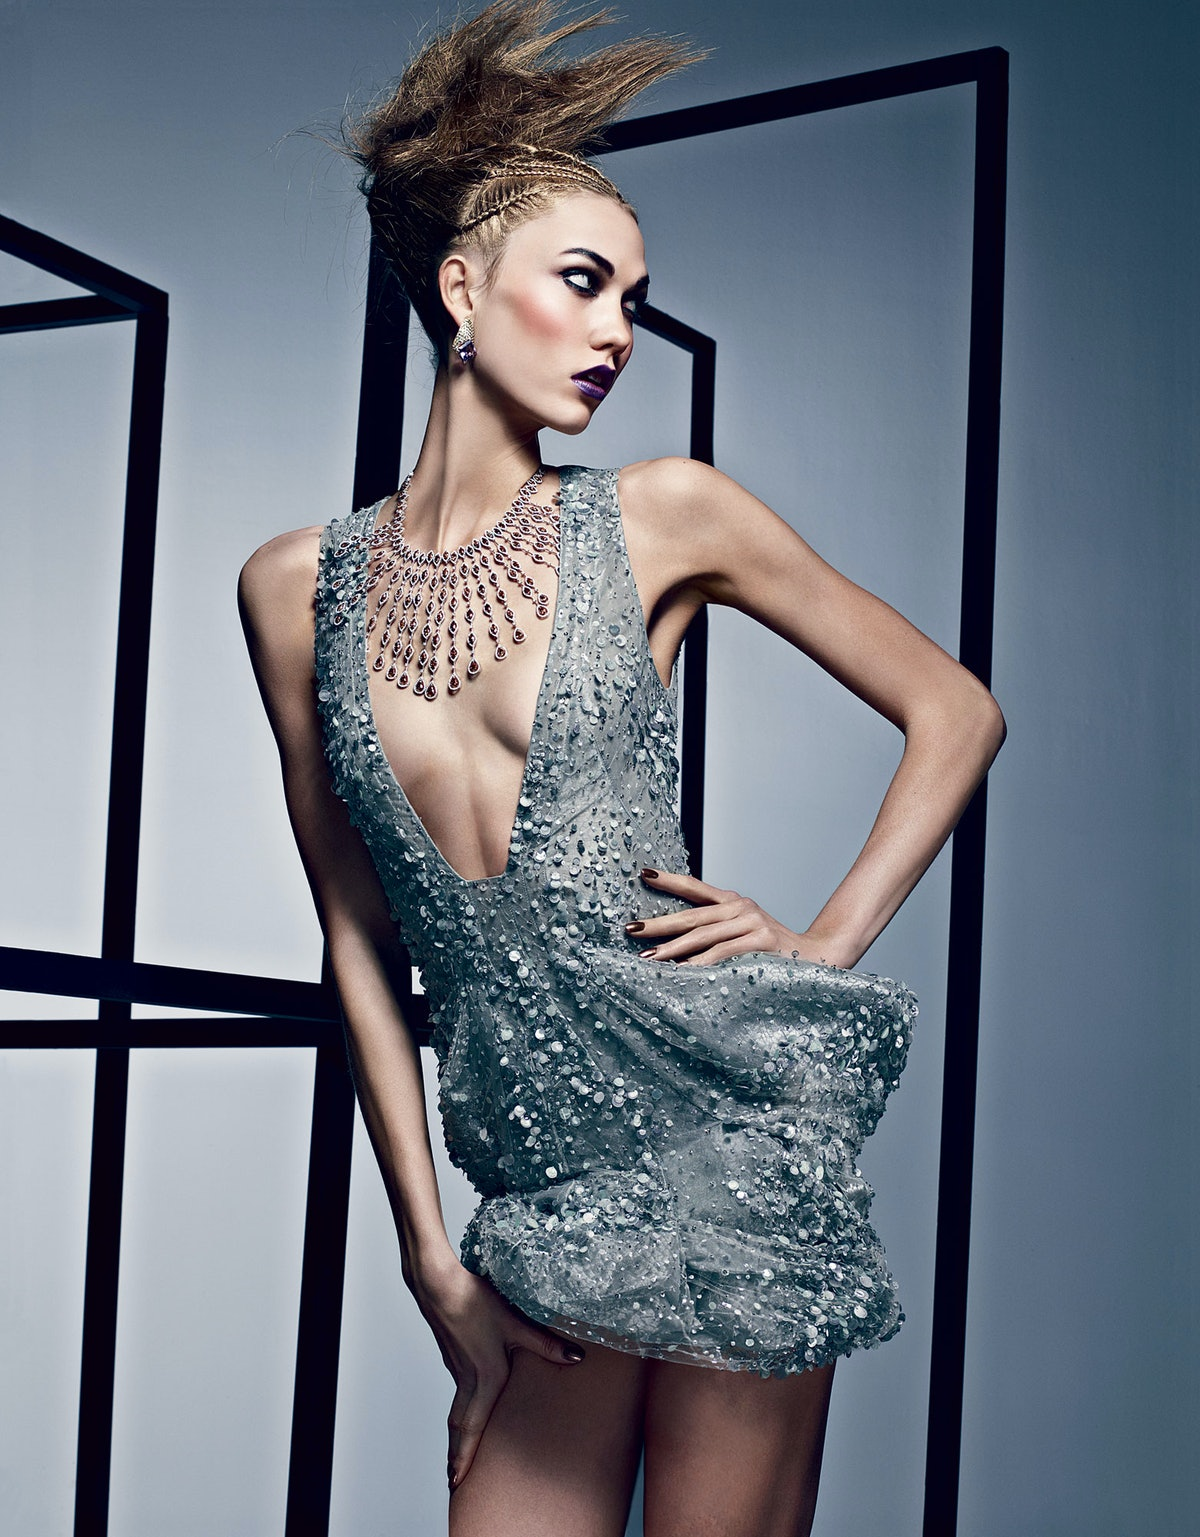 """Striking a pose for """"[Drama Queen](http://www.wmagazine.com/fashion/features/2012/03/karlie-kloss-drama-queen-ss/photos/),"""" shot by Craig McDean and styled by Lori Goldstein for April 2012."""